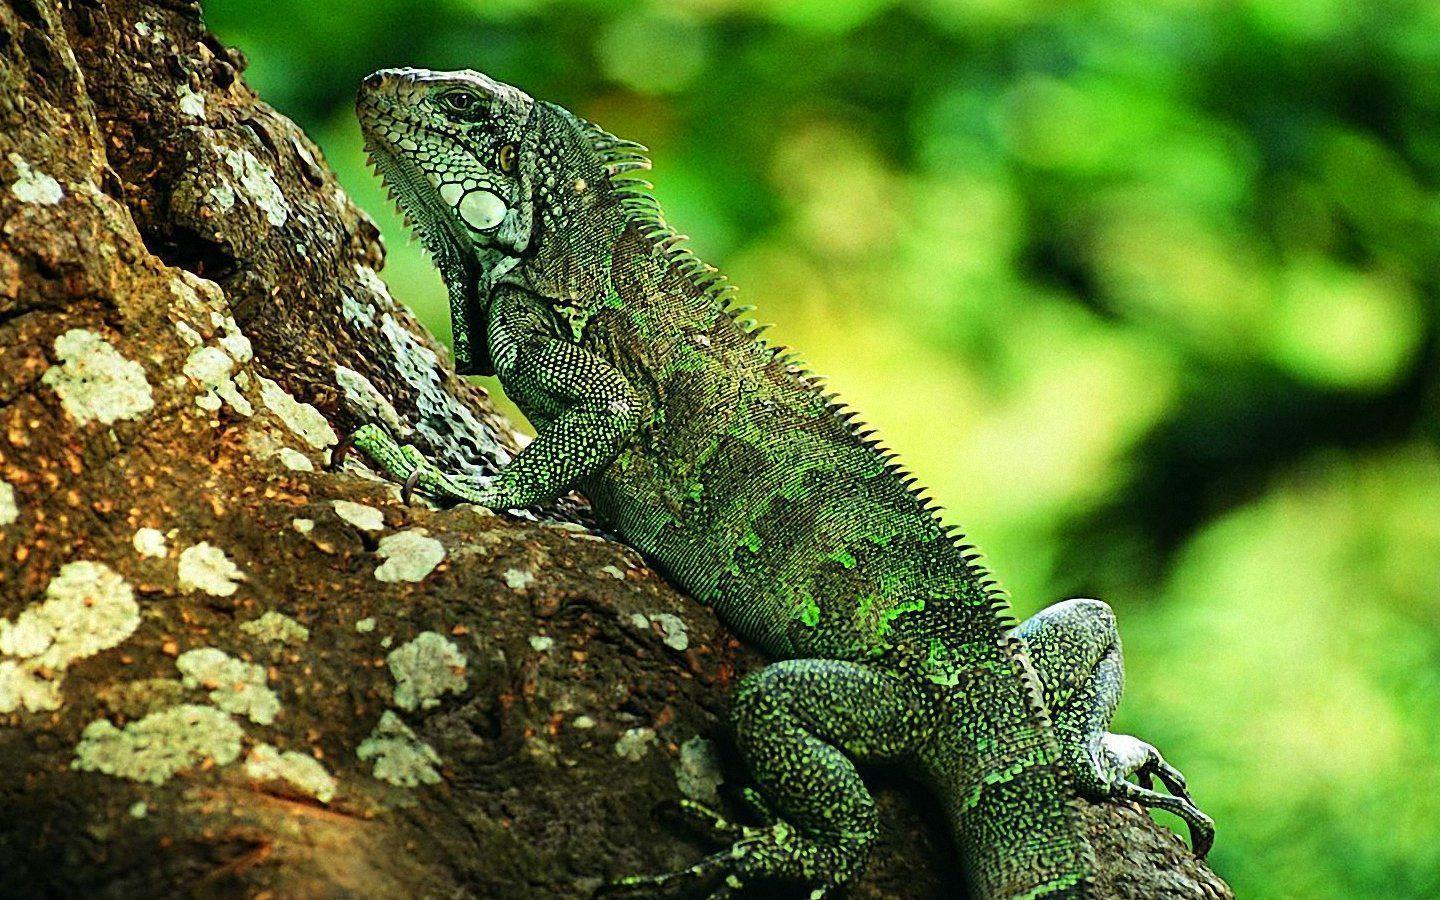 22 reptile hd wallpapers - photo #7